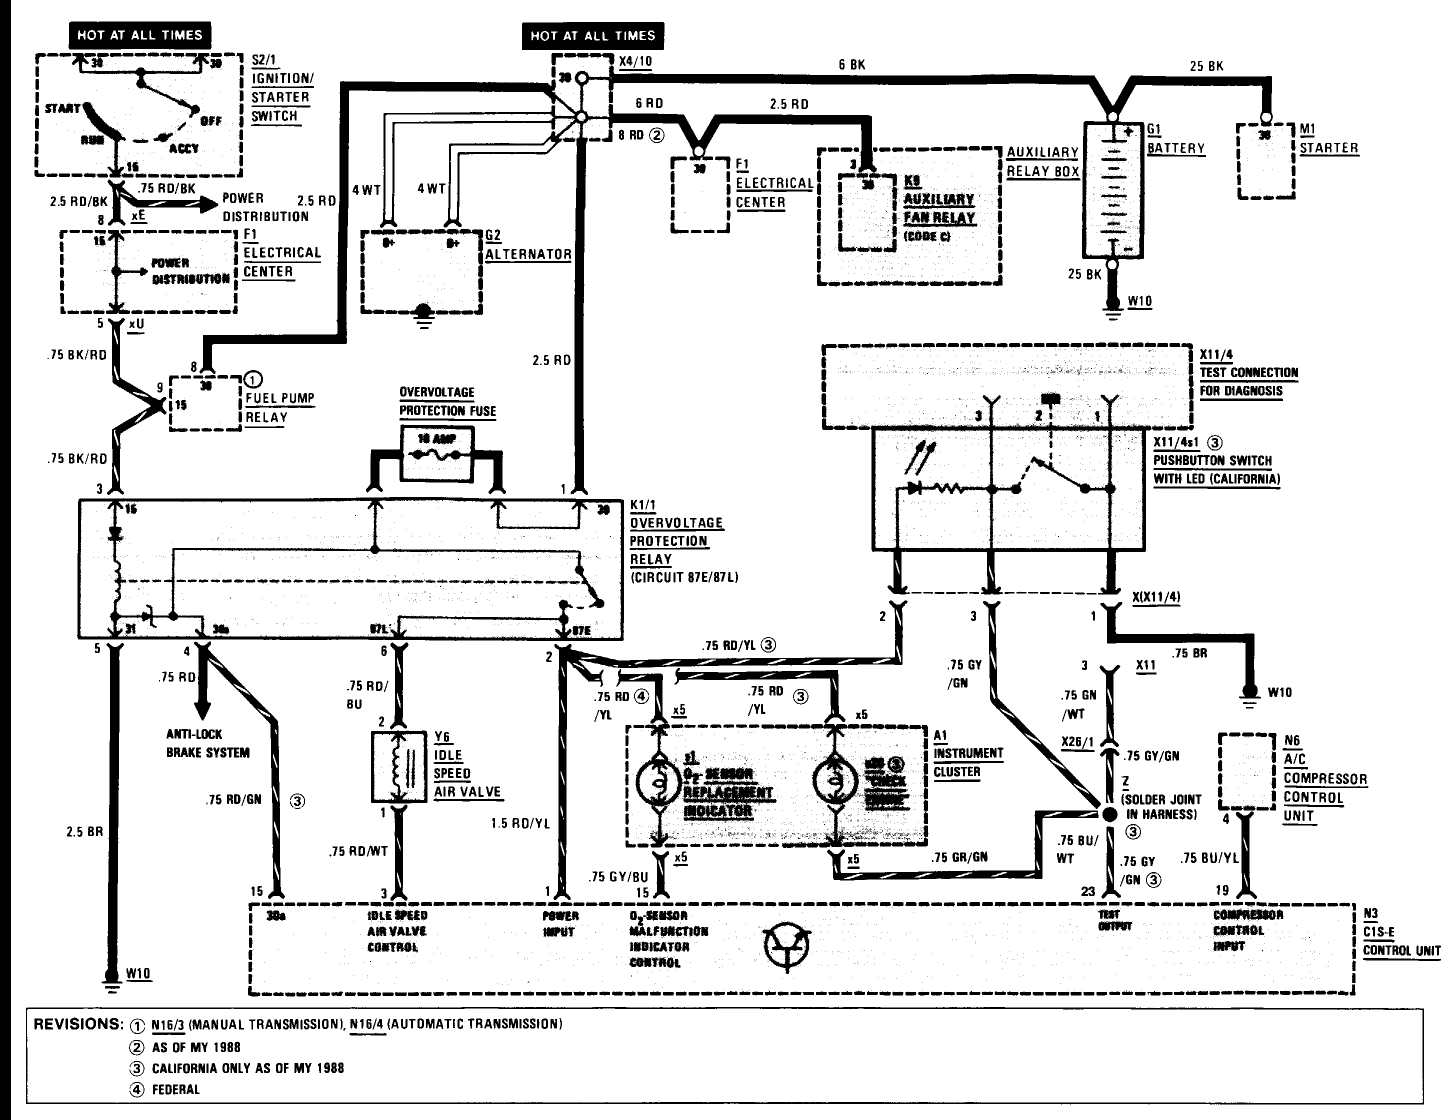 Wiring Diagram Mercedes Vito W638 : Mercedes vito wiring diagram midget wire diagrams